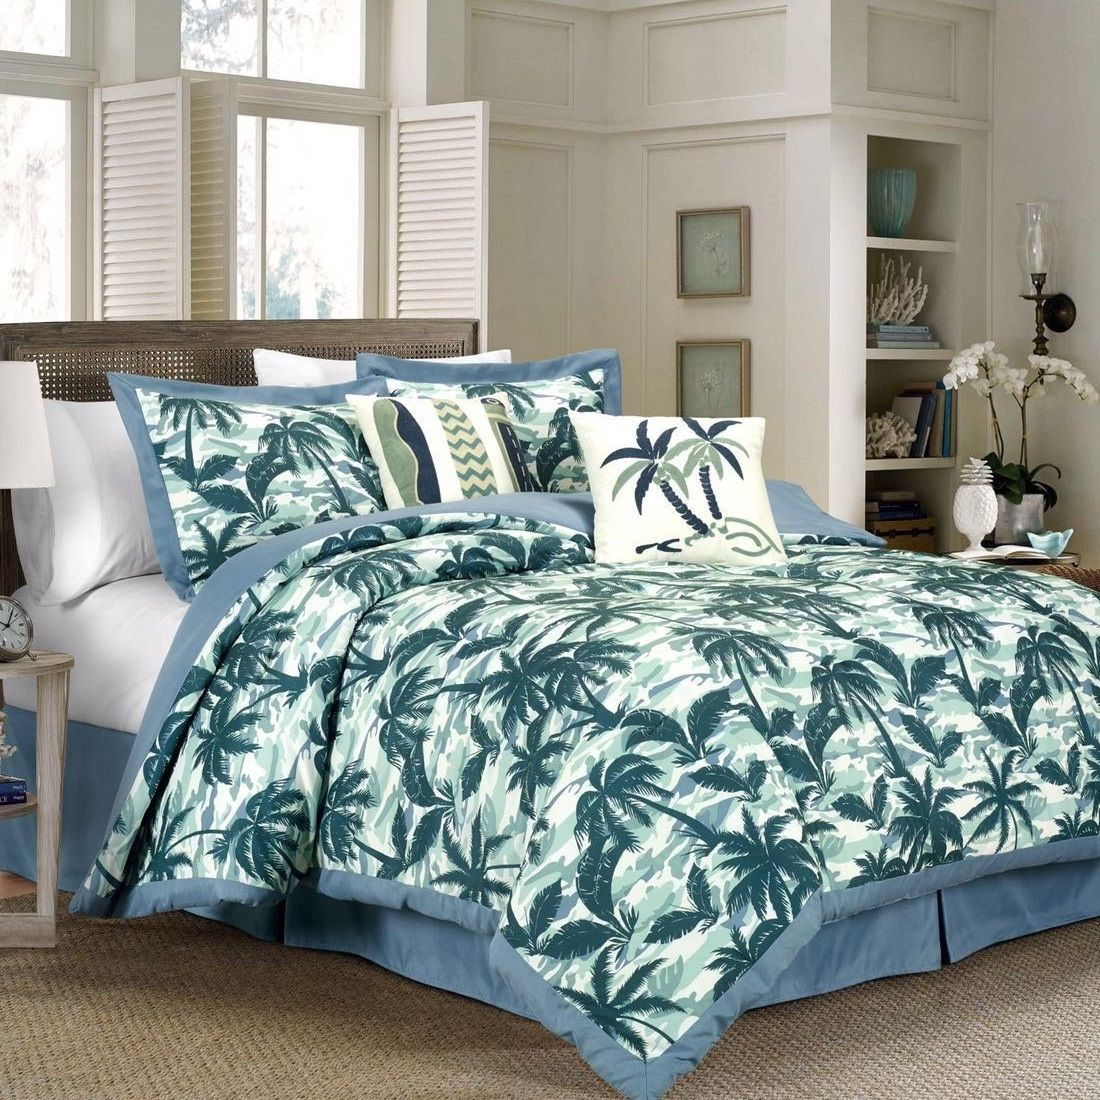 quilts and comforters faux gatlinburg comforter quilt asli rustic bedding co sheet set aetherair leather